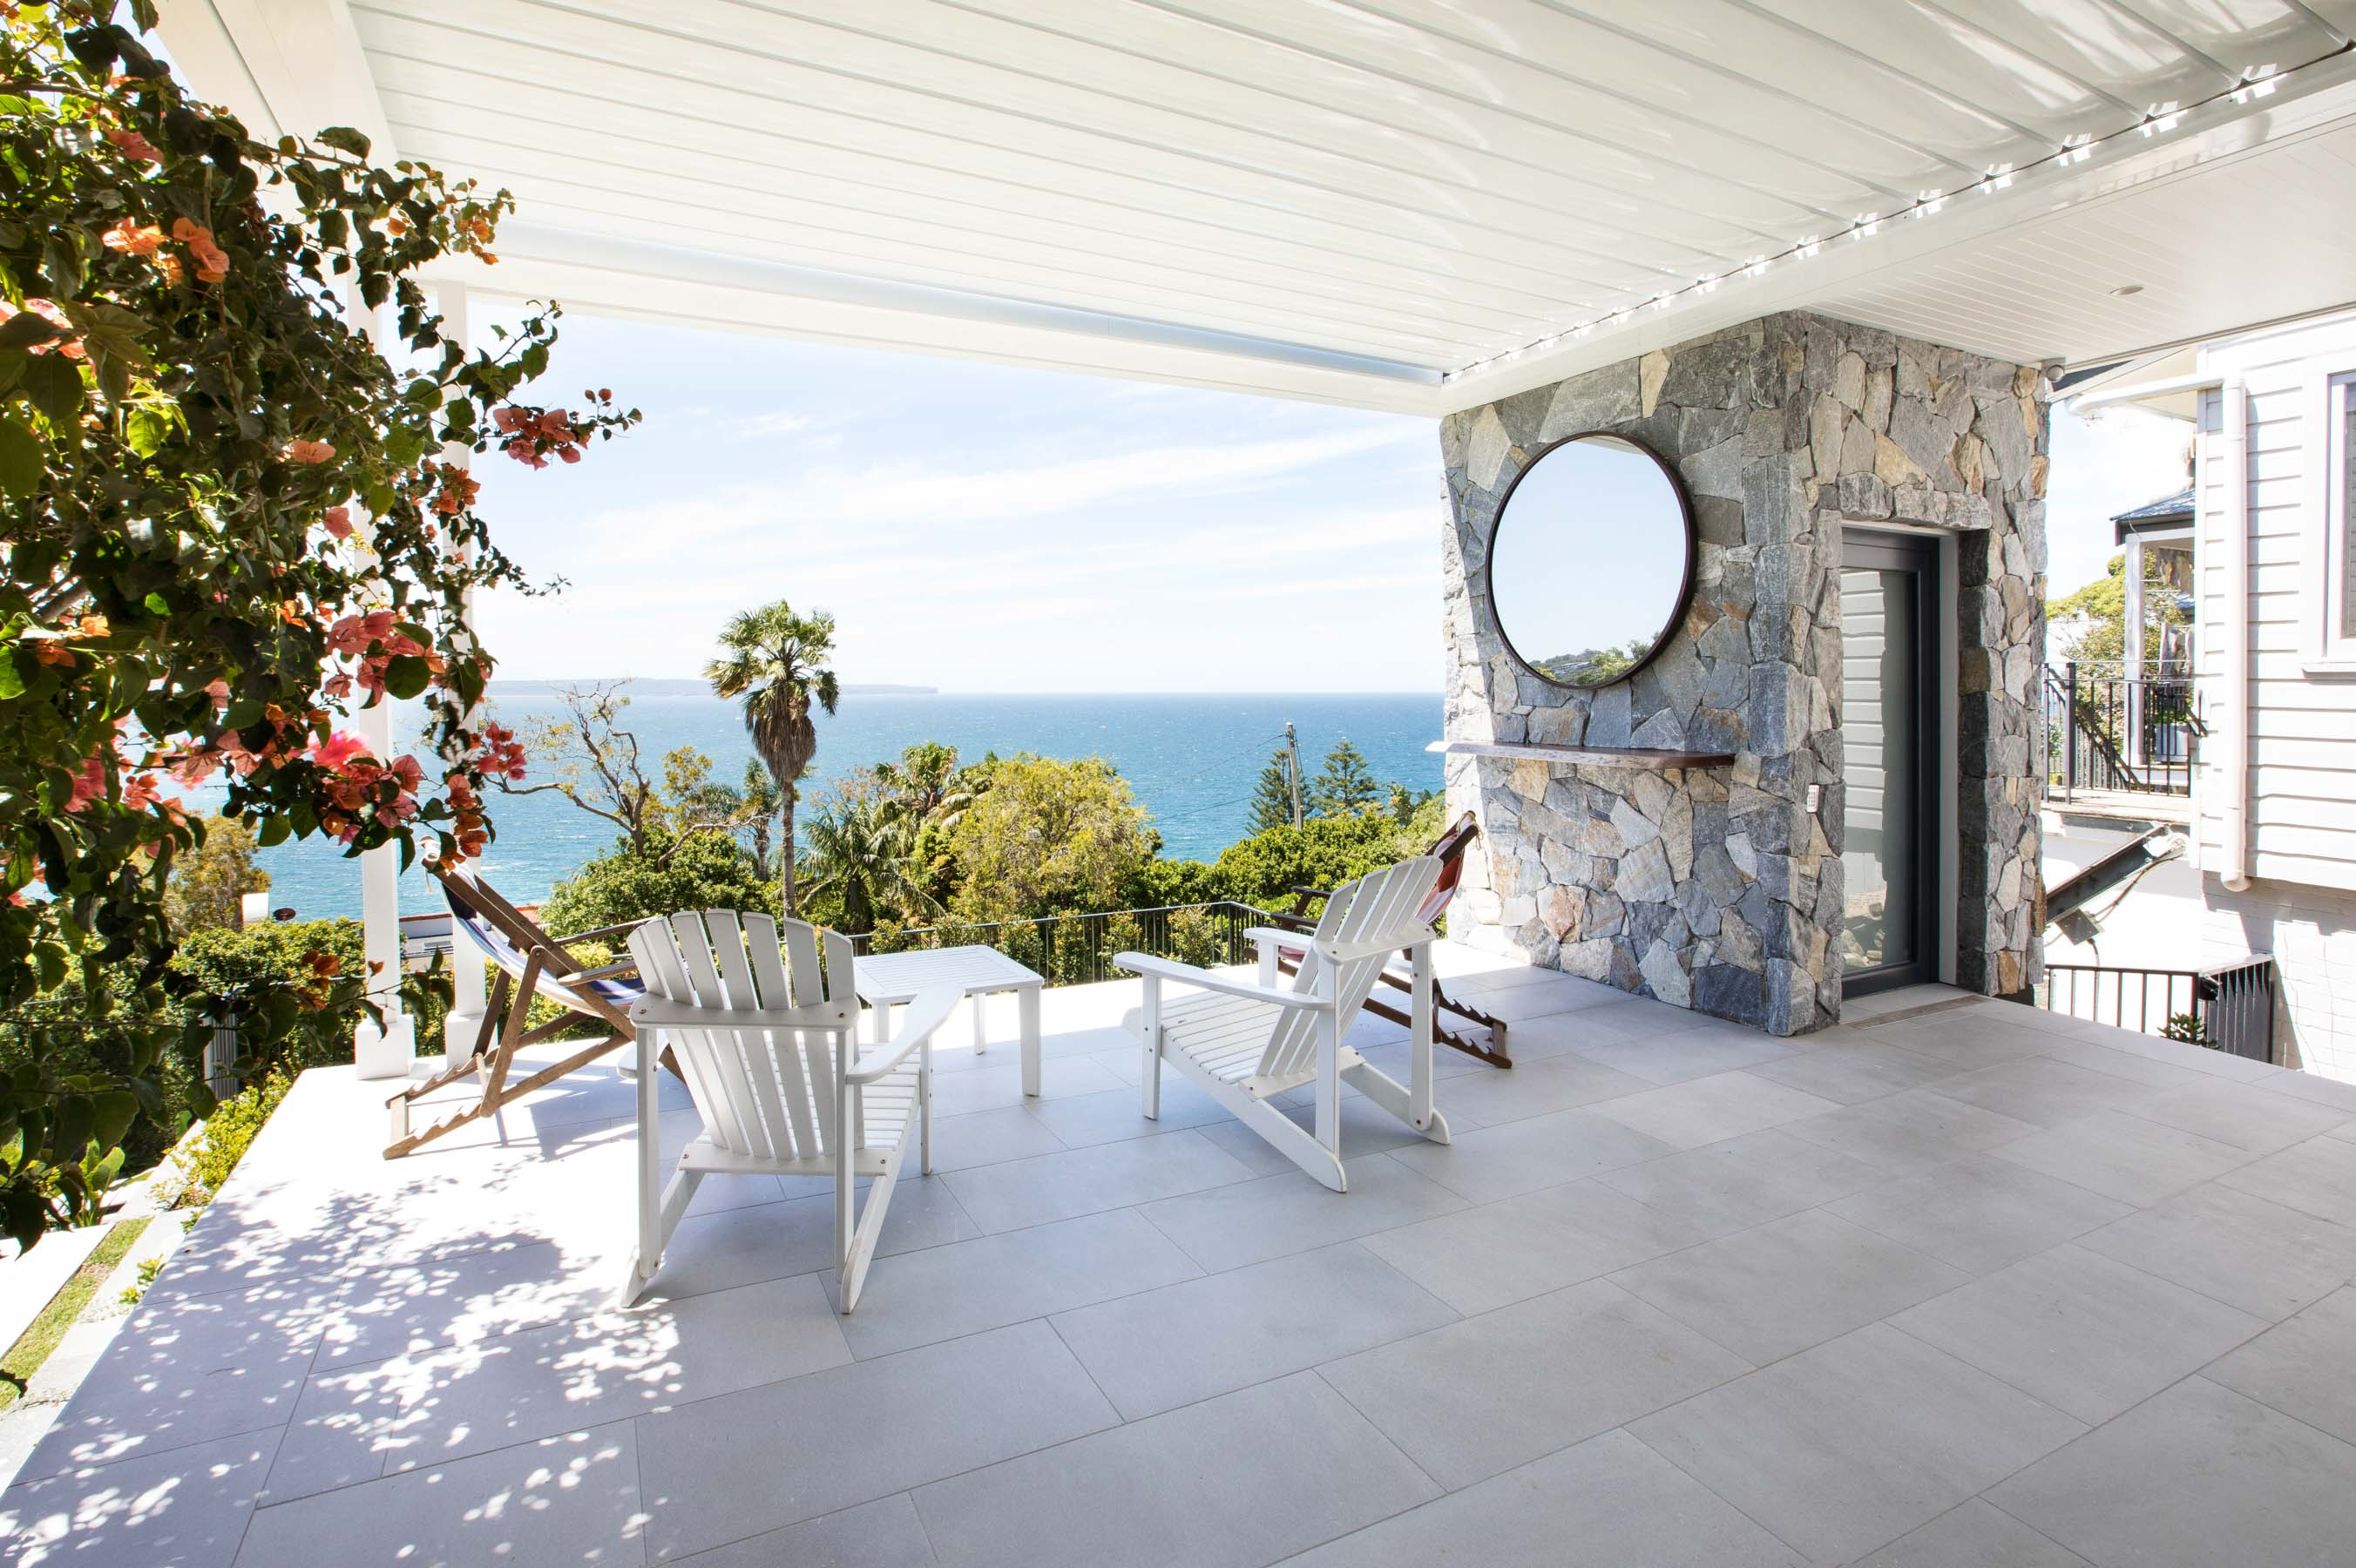 Stone-Pavers-and-Tiles-Outdoor Gallery osteri-01